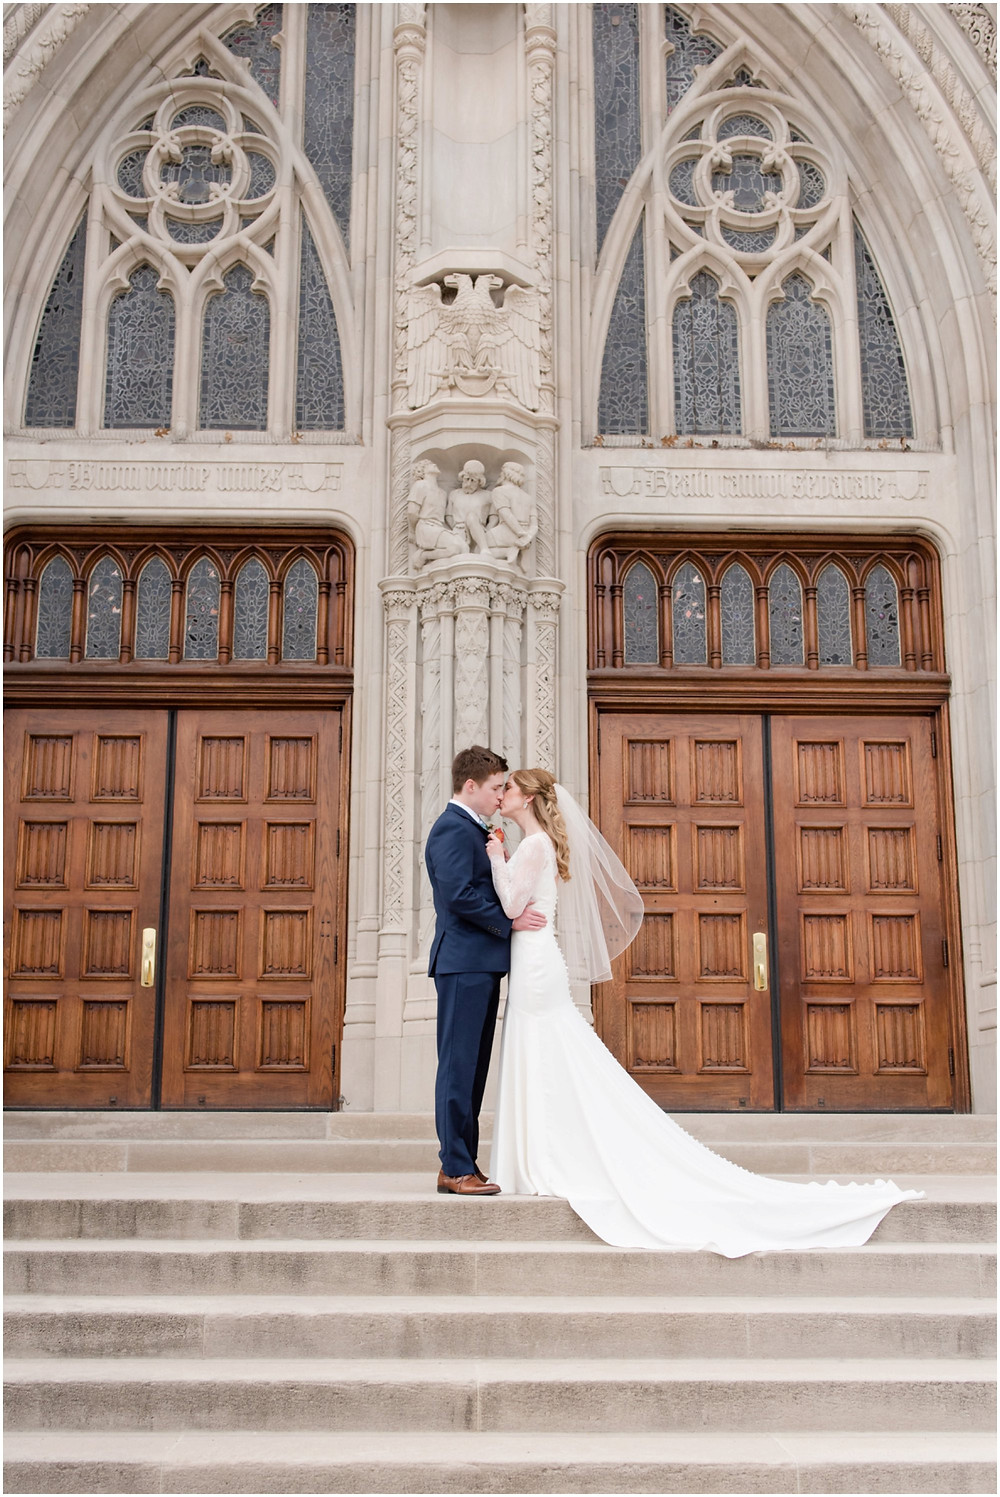 romantic bride and groom poses